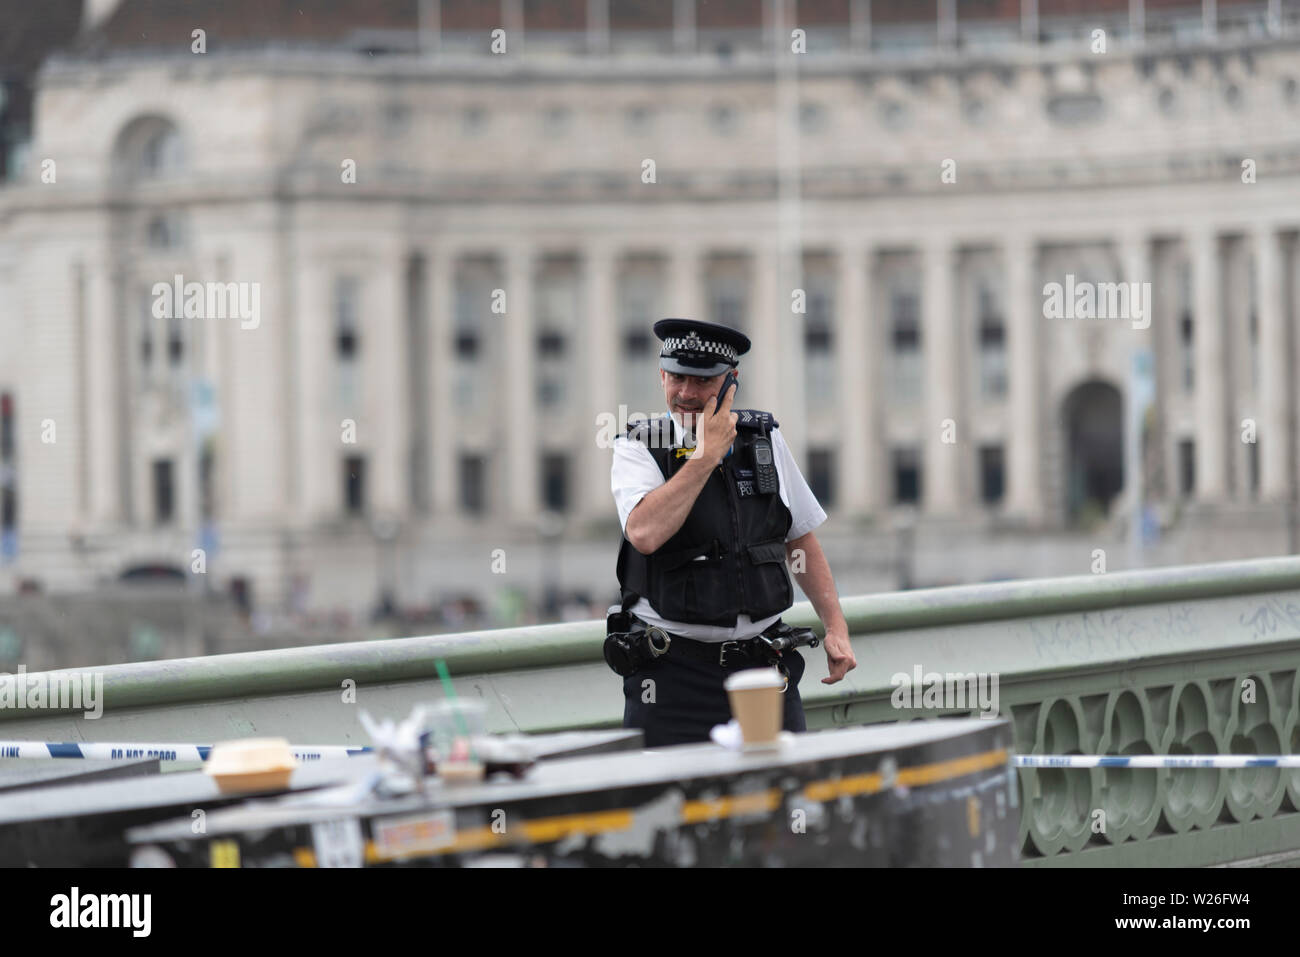 police-have-closed-westminster-bridge-to-vehicle-and-pedestrian-traffic-after-it-was-hit-by-a-city-cruises-vessel-on-the-river-thames-around-1630-fire-brigade-also-in-attendance-the-bridge-will-remain-closed-until-it-has-been-inspected-and-declared-safe-male-officer-reporting-in-W26FW4.jpg